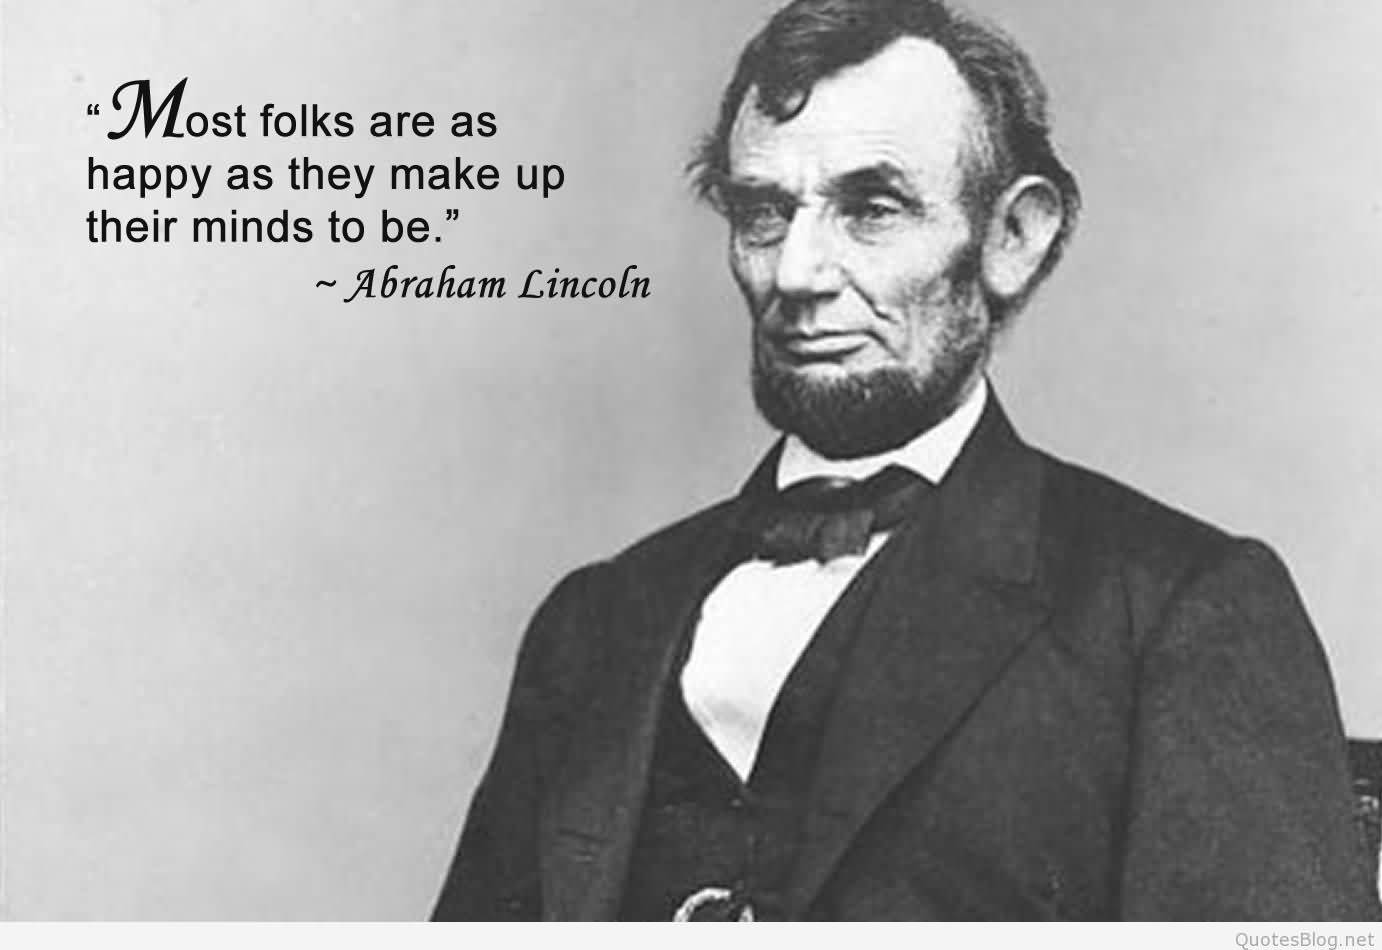 Abraham Lincoln Quotes On Life 05